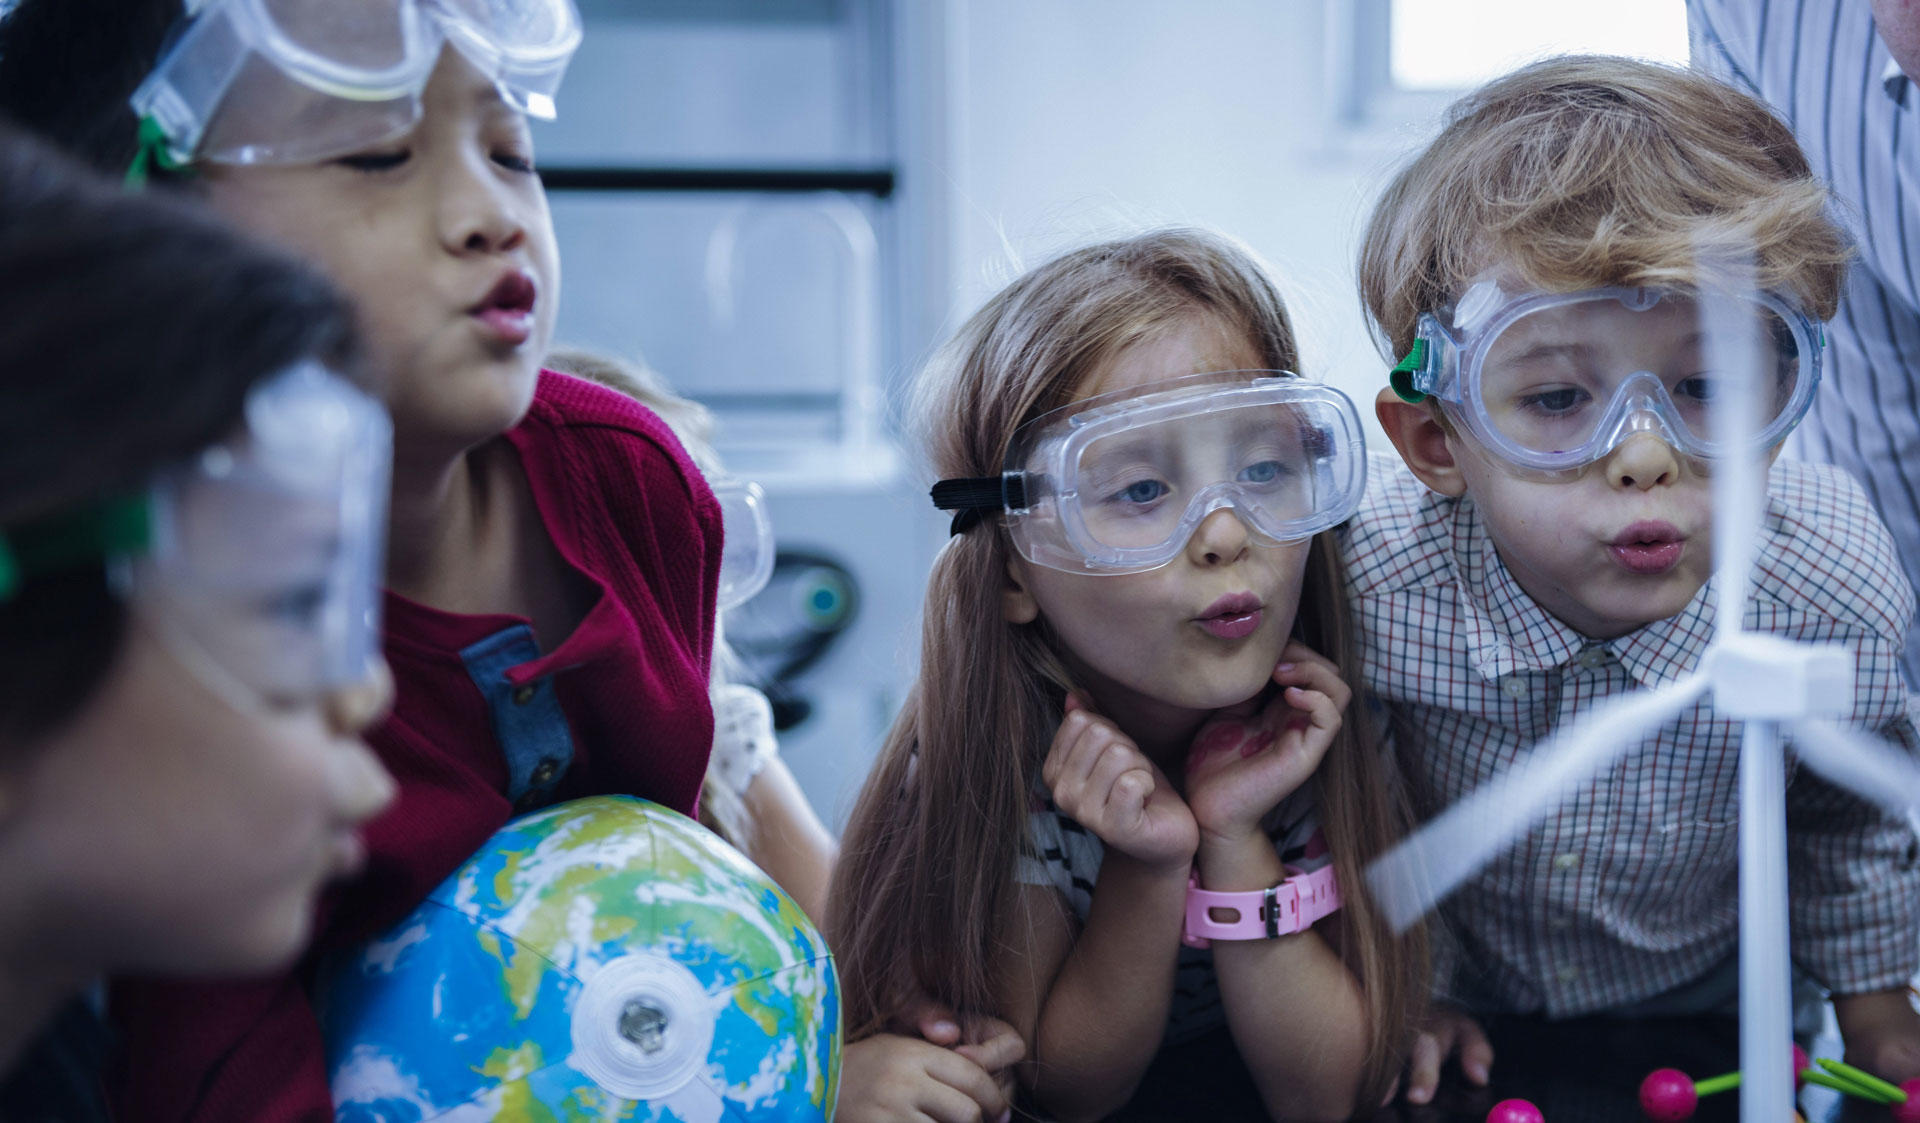 Children with protective masks in a classroom learning about science and the world. Image of the Master's Programme in Changing Education at the University of Helsinki.